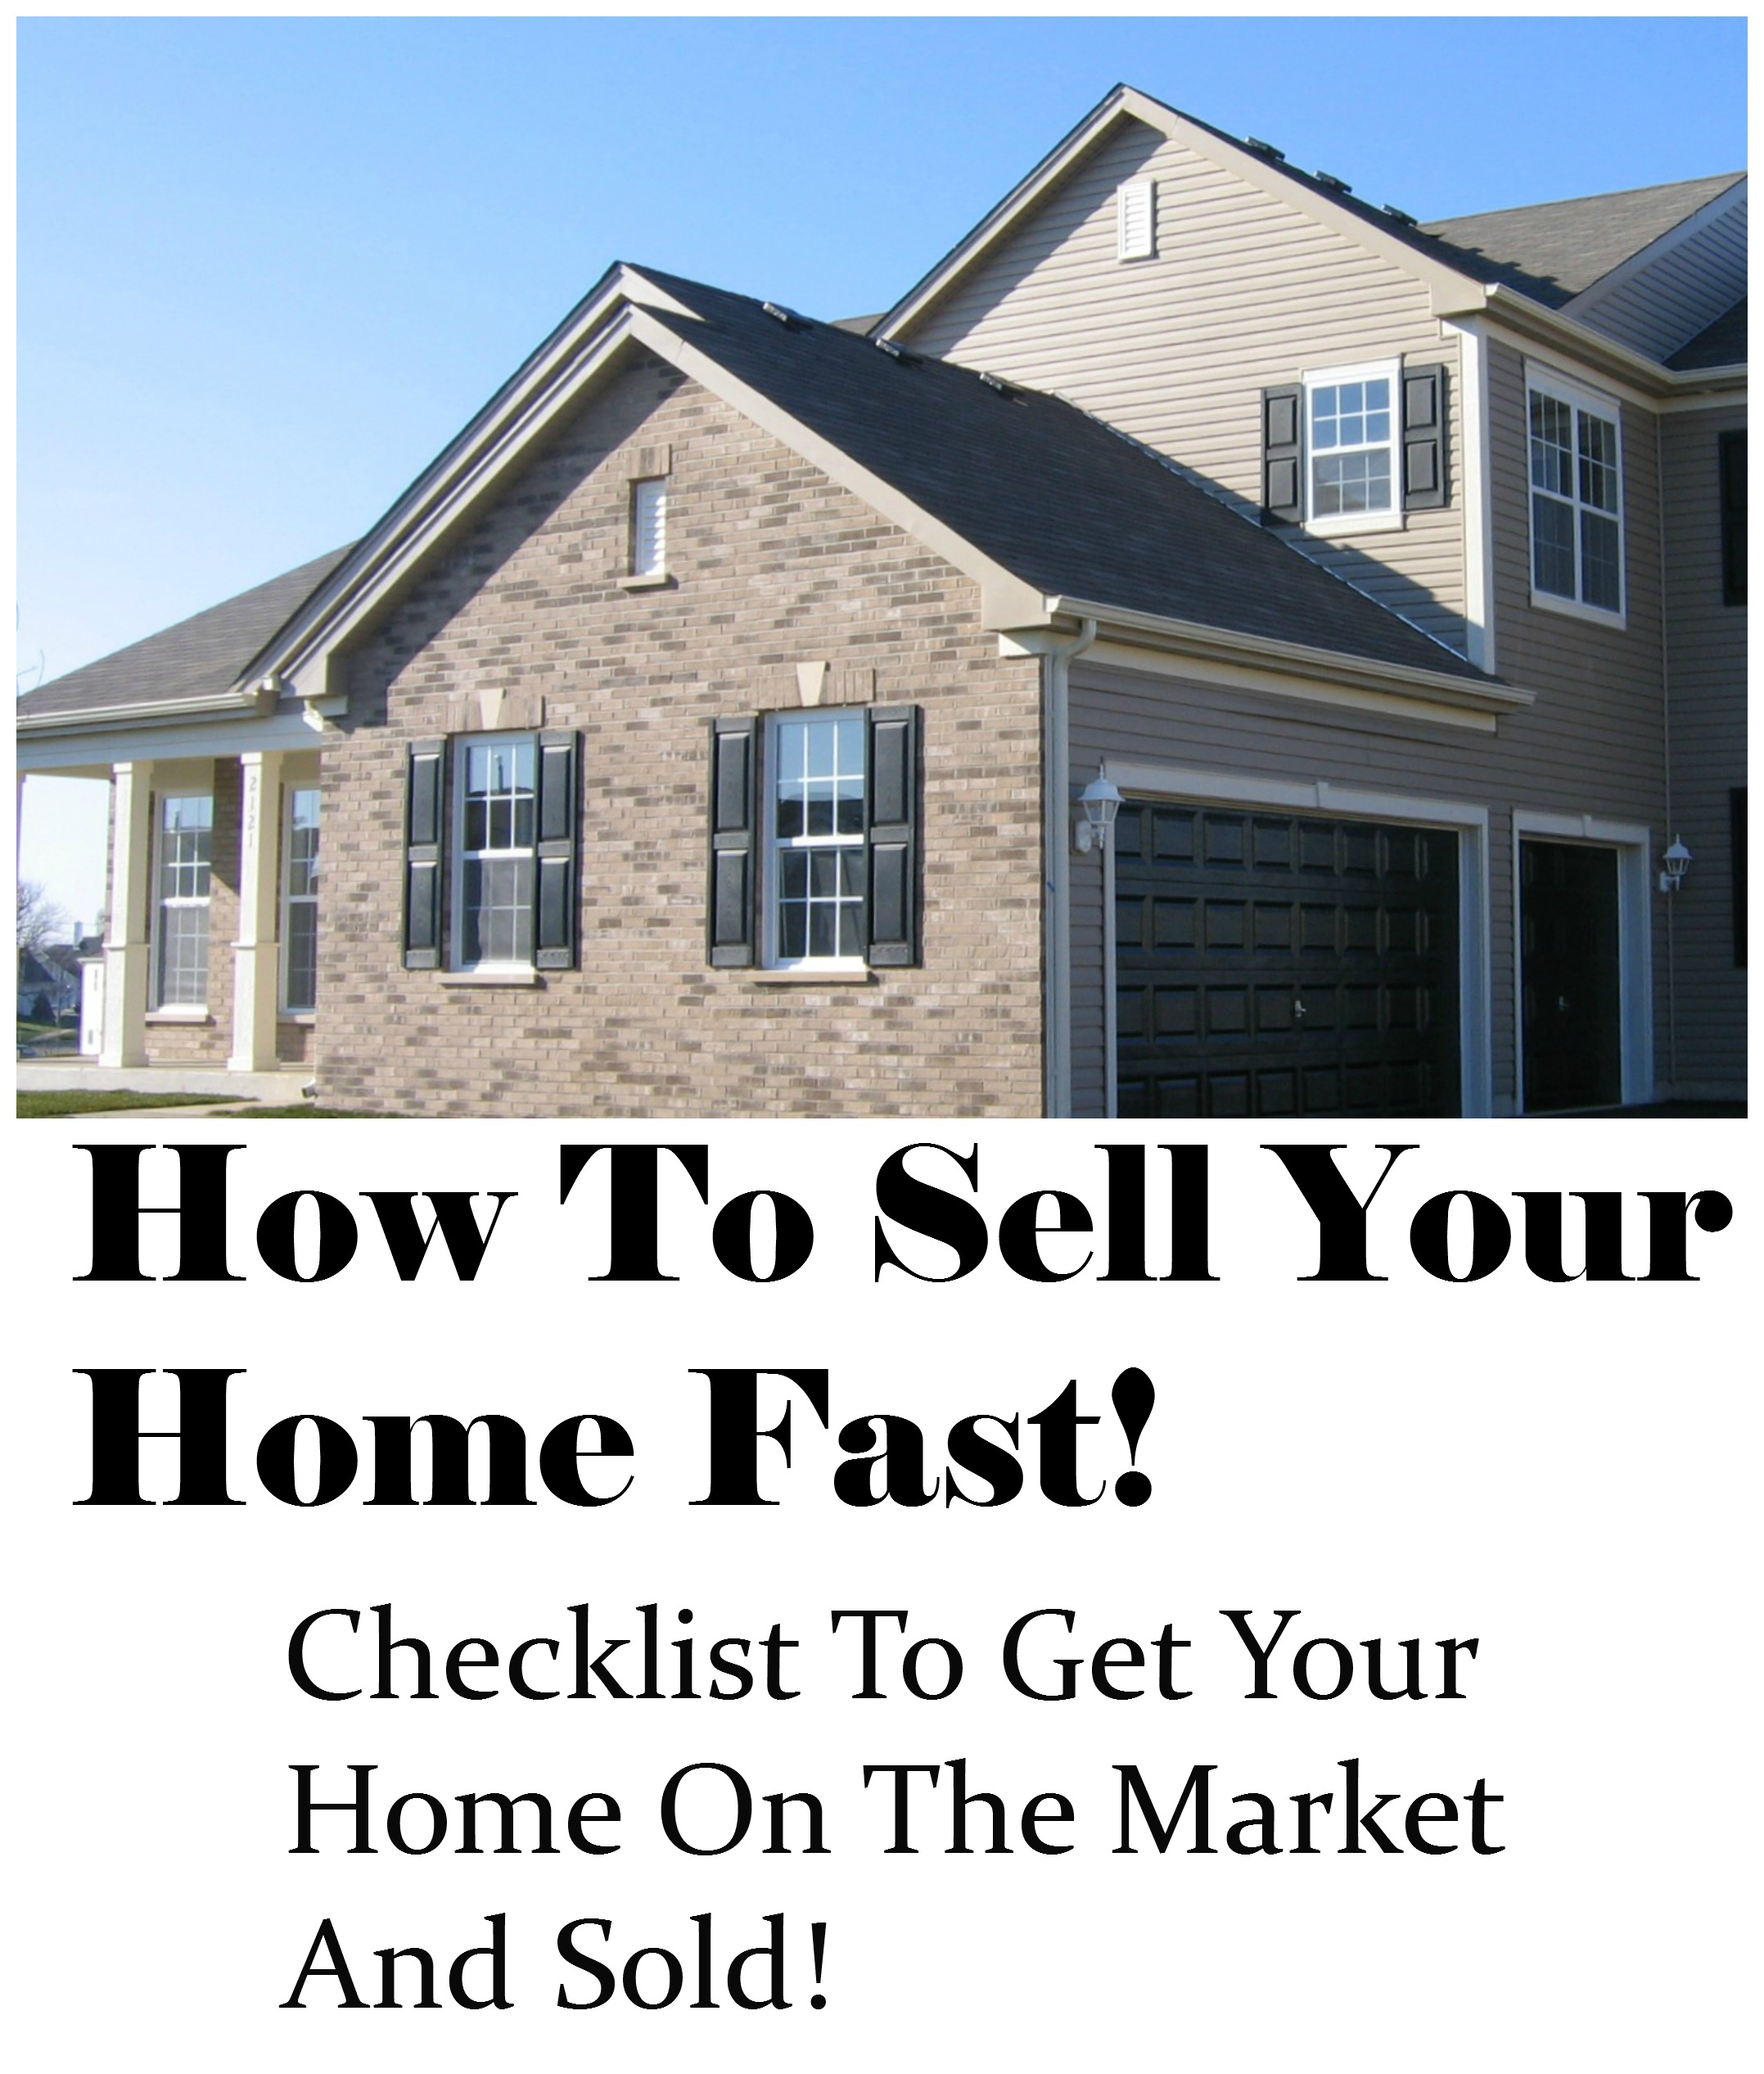 Selling your house checklist - Selling Your House Checklist 51